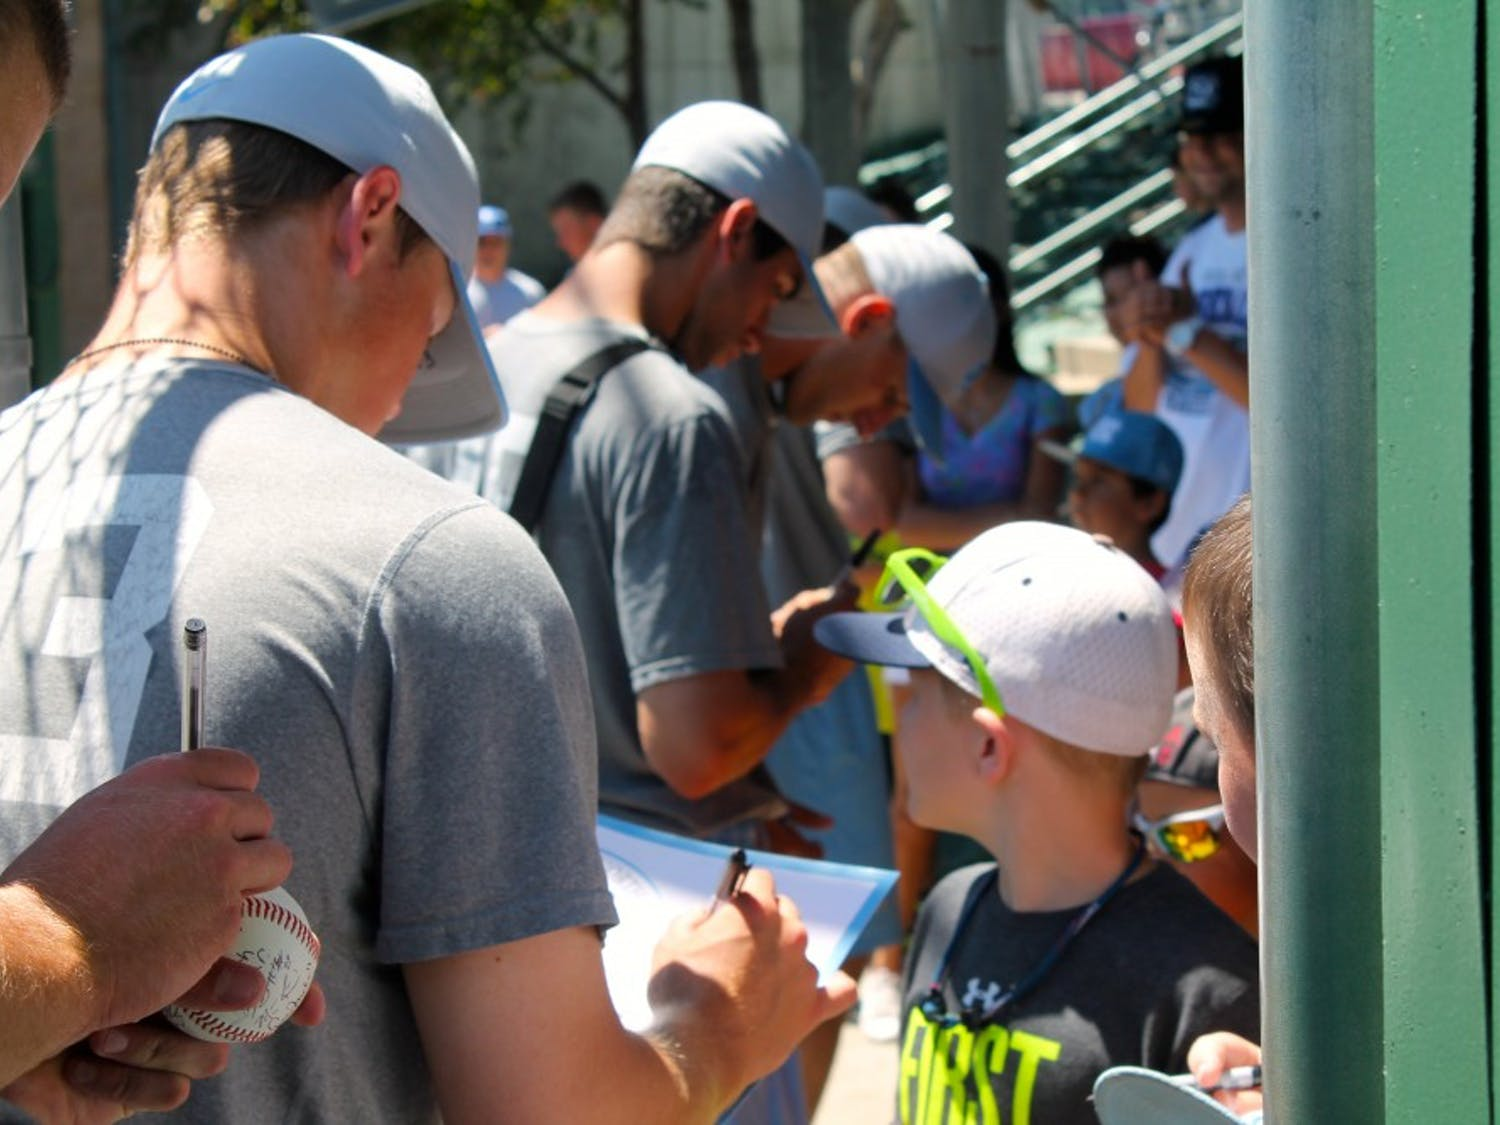 UNC's baseball team signs autographs for waiting fans on the way to the bus following Monday afternoon's practice.